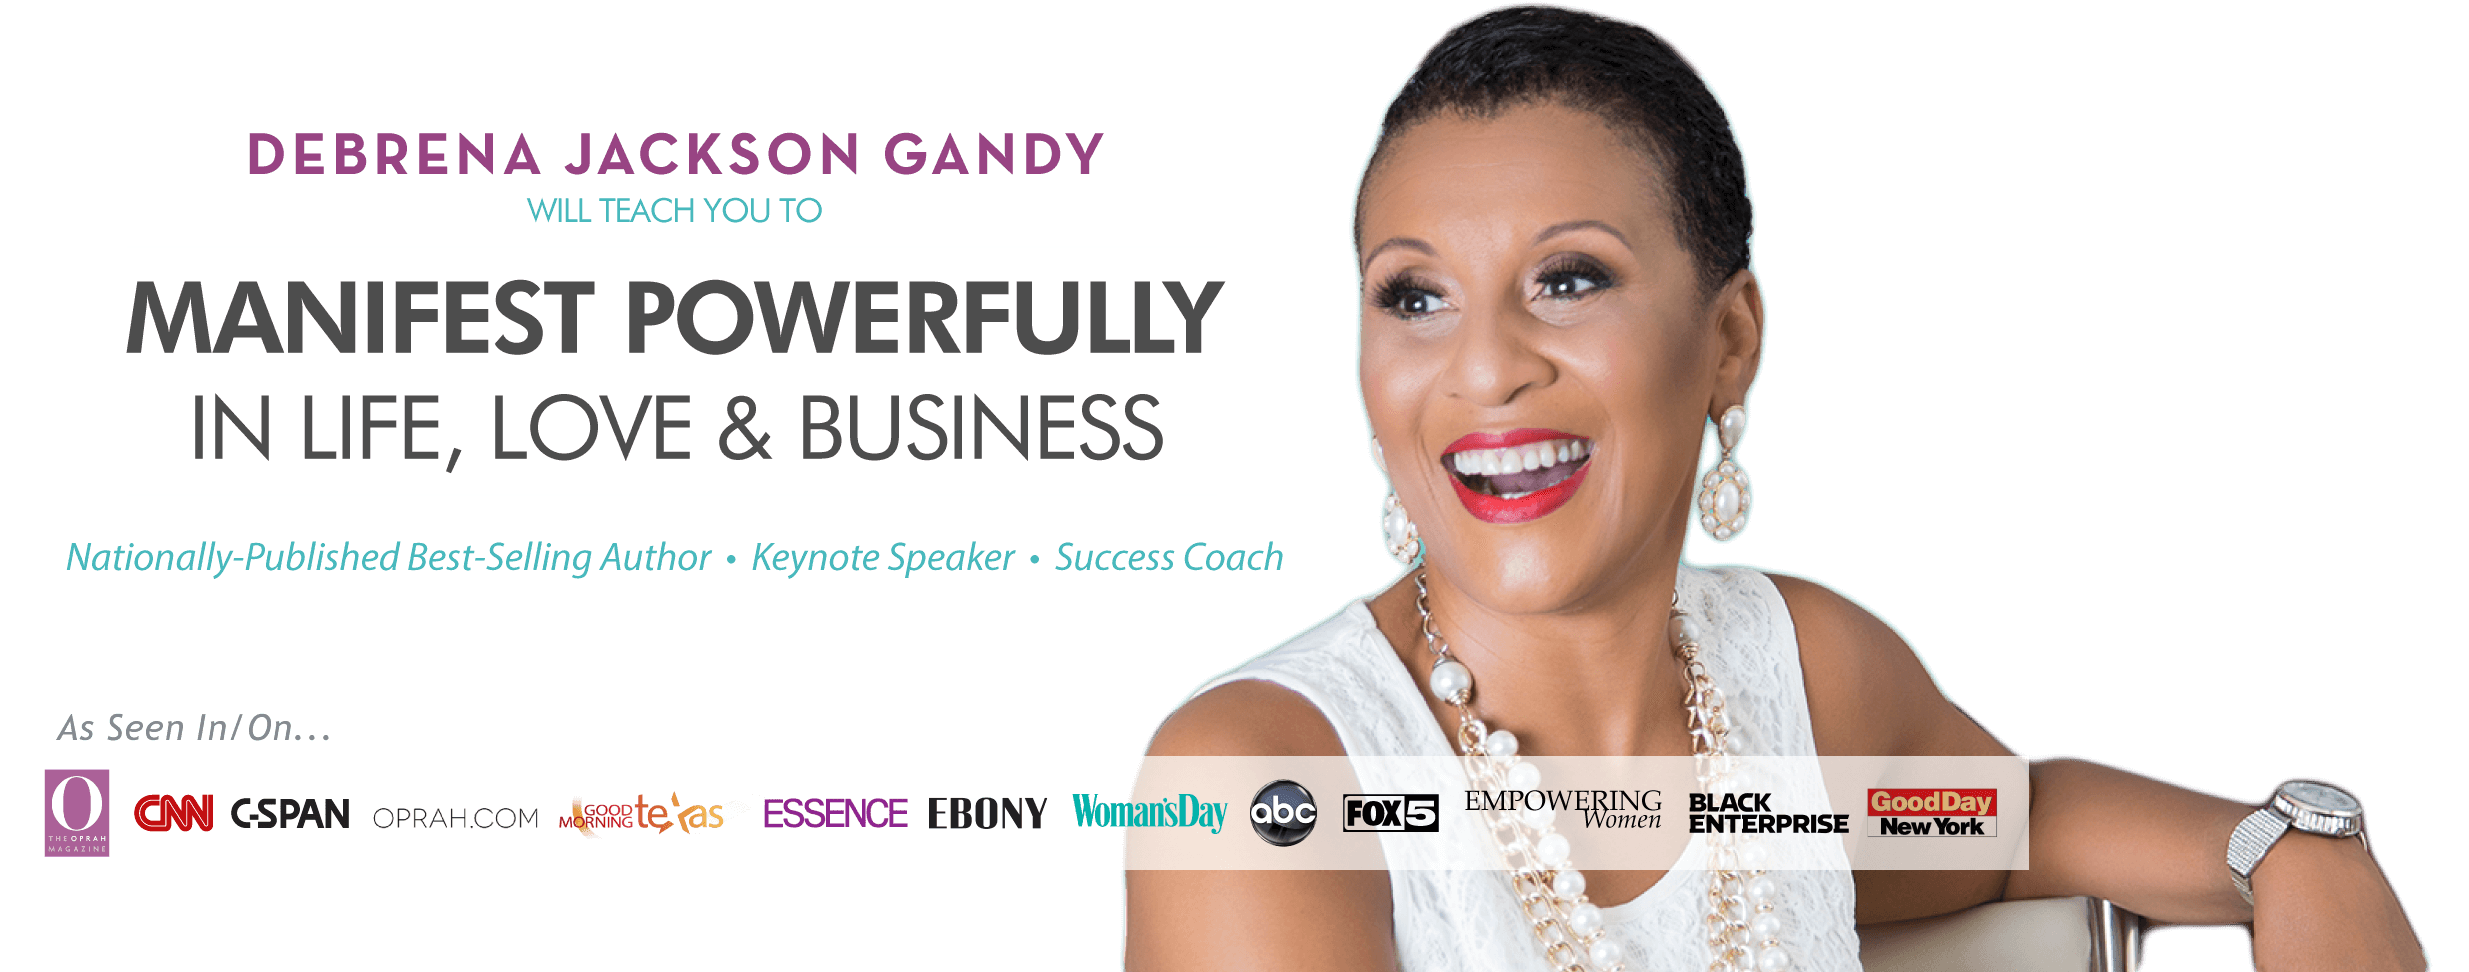 Debrena Jackson Gandy will teach you to MANIFEST POWERFULLY in Life, Love & Business